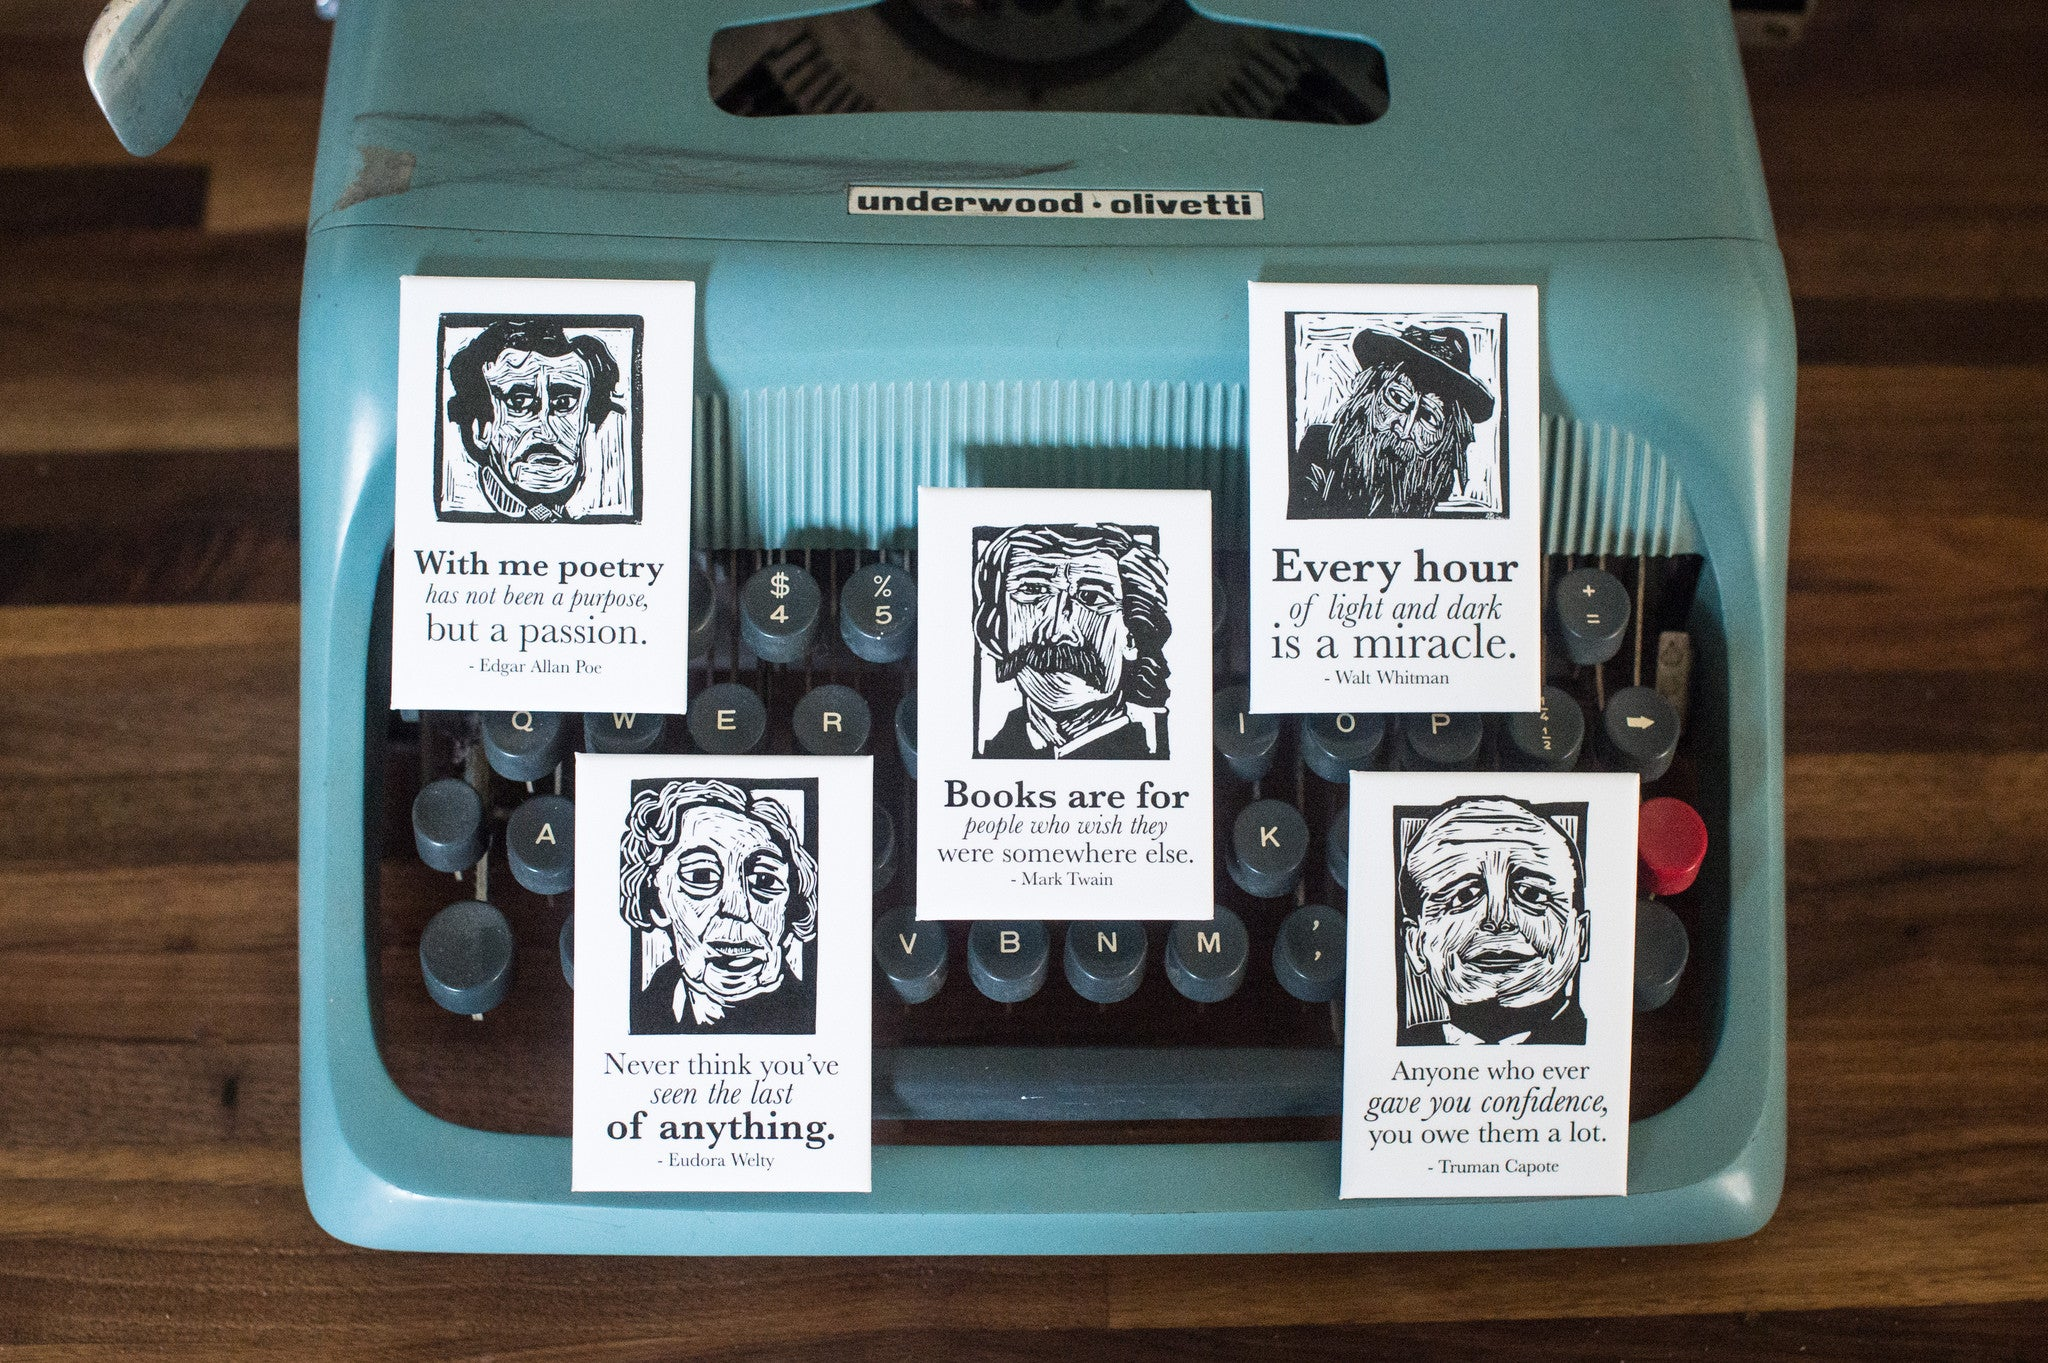 gifts for book lovers Magnet set of Edgar Allan Poe, Mark Twain, Walt Whitman, Eudora Welty and Truman Capote on typewriter literary gifts by Eastgrove Studio